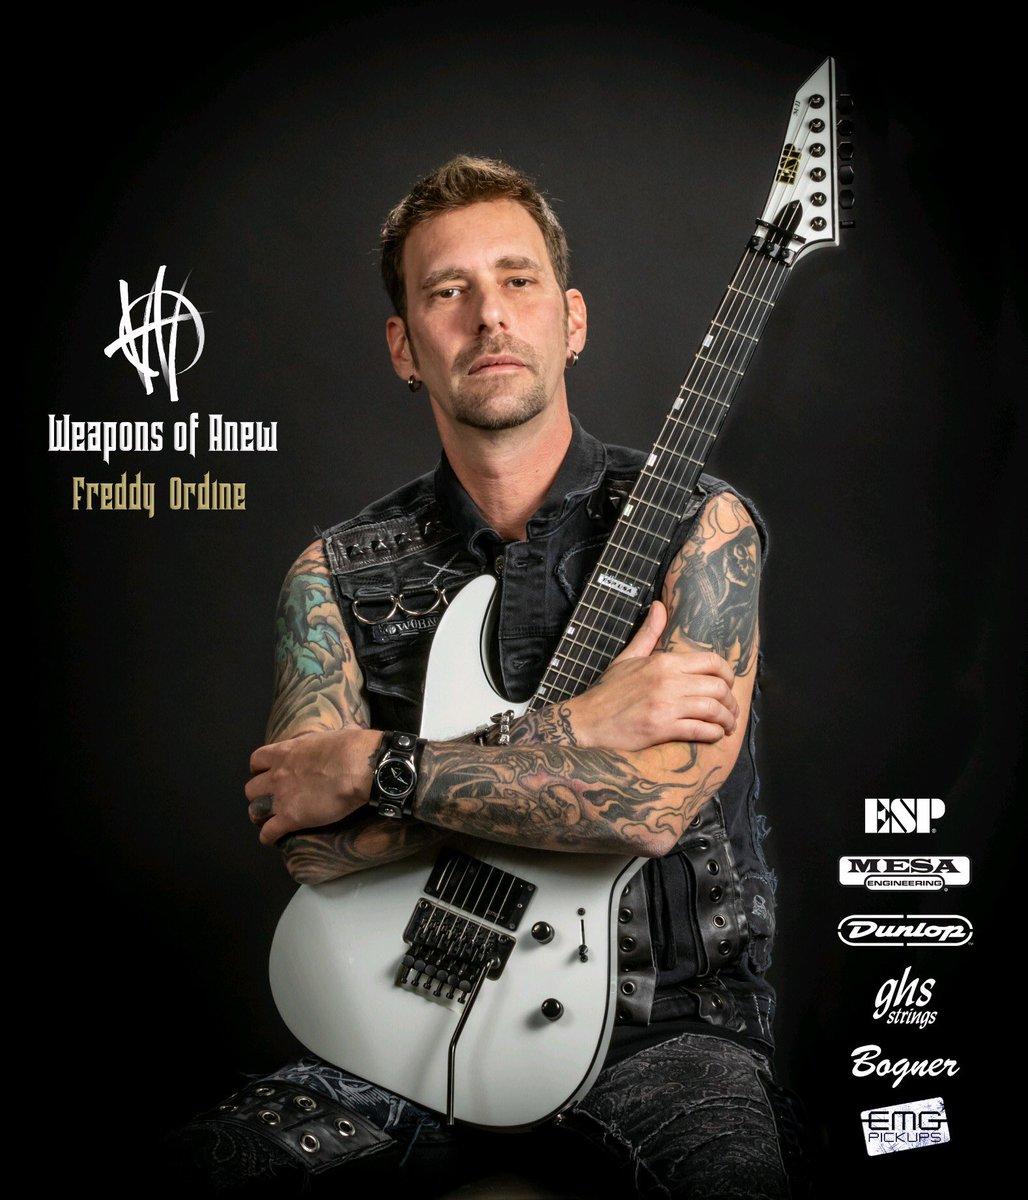 Hey guys, I will be at the esp guitars booth at NAMM at 12:30 today doing an interview about my USA custom shop guitars they build for me! Come by and say hello. - Freddy @ESPGuitarsUSA  @BognerAmps  @MesaBoogie  @EMG_PICKUPS  @jimdunlopusa  @ghsstrings  @fractalaudio #namm2020pic.twitter.com/hR3pPJ0y4c